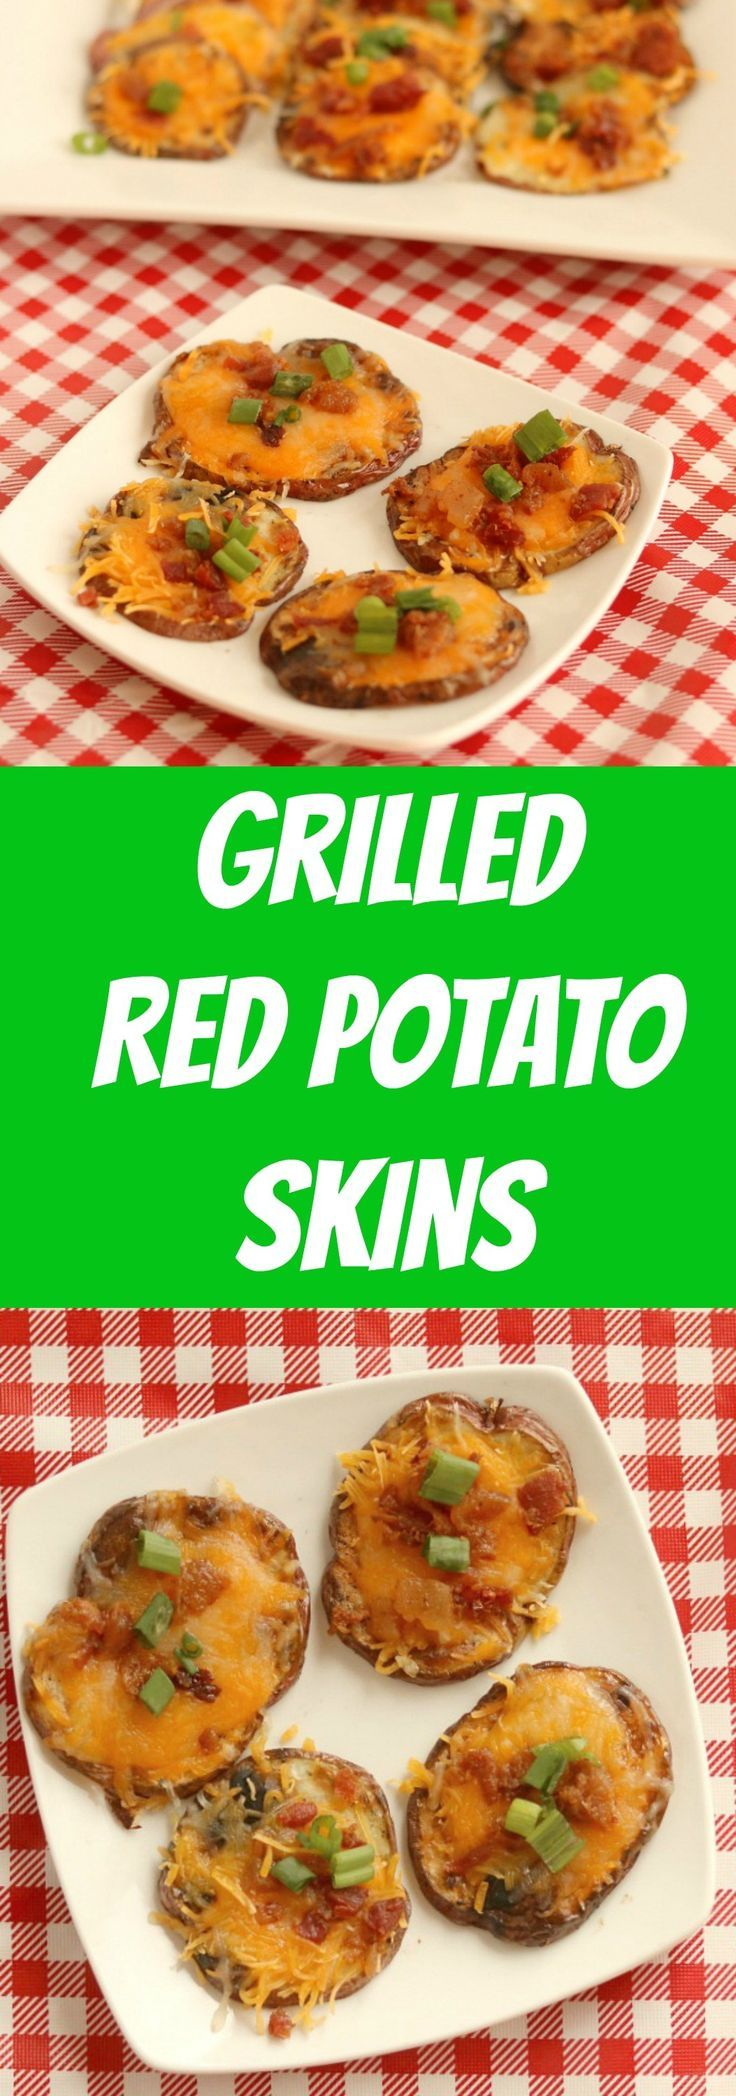 grilled red potato skins